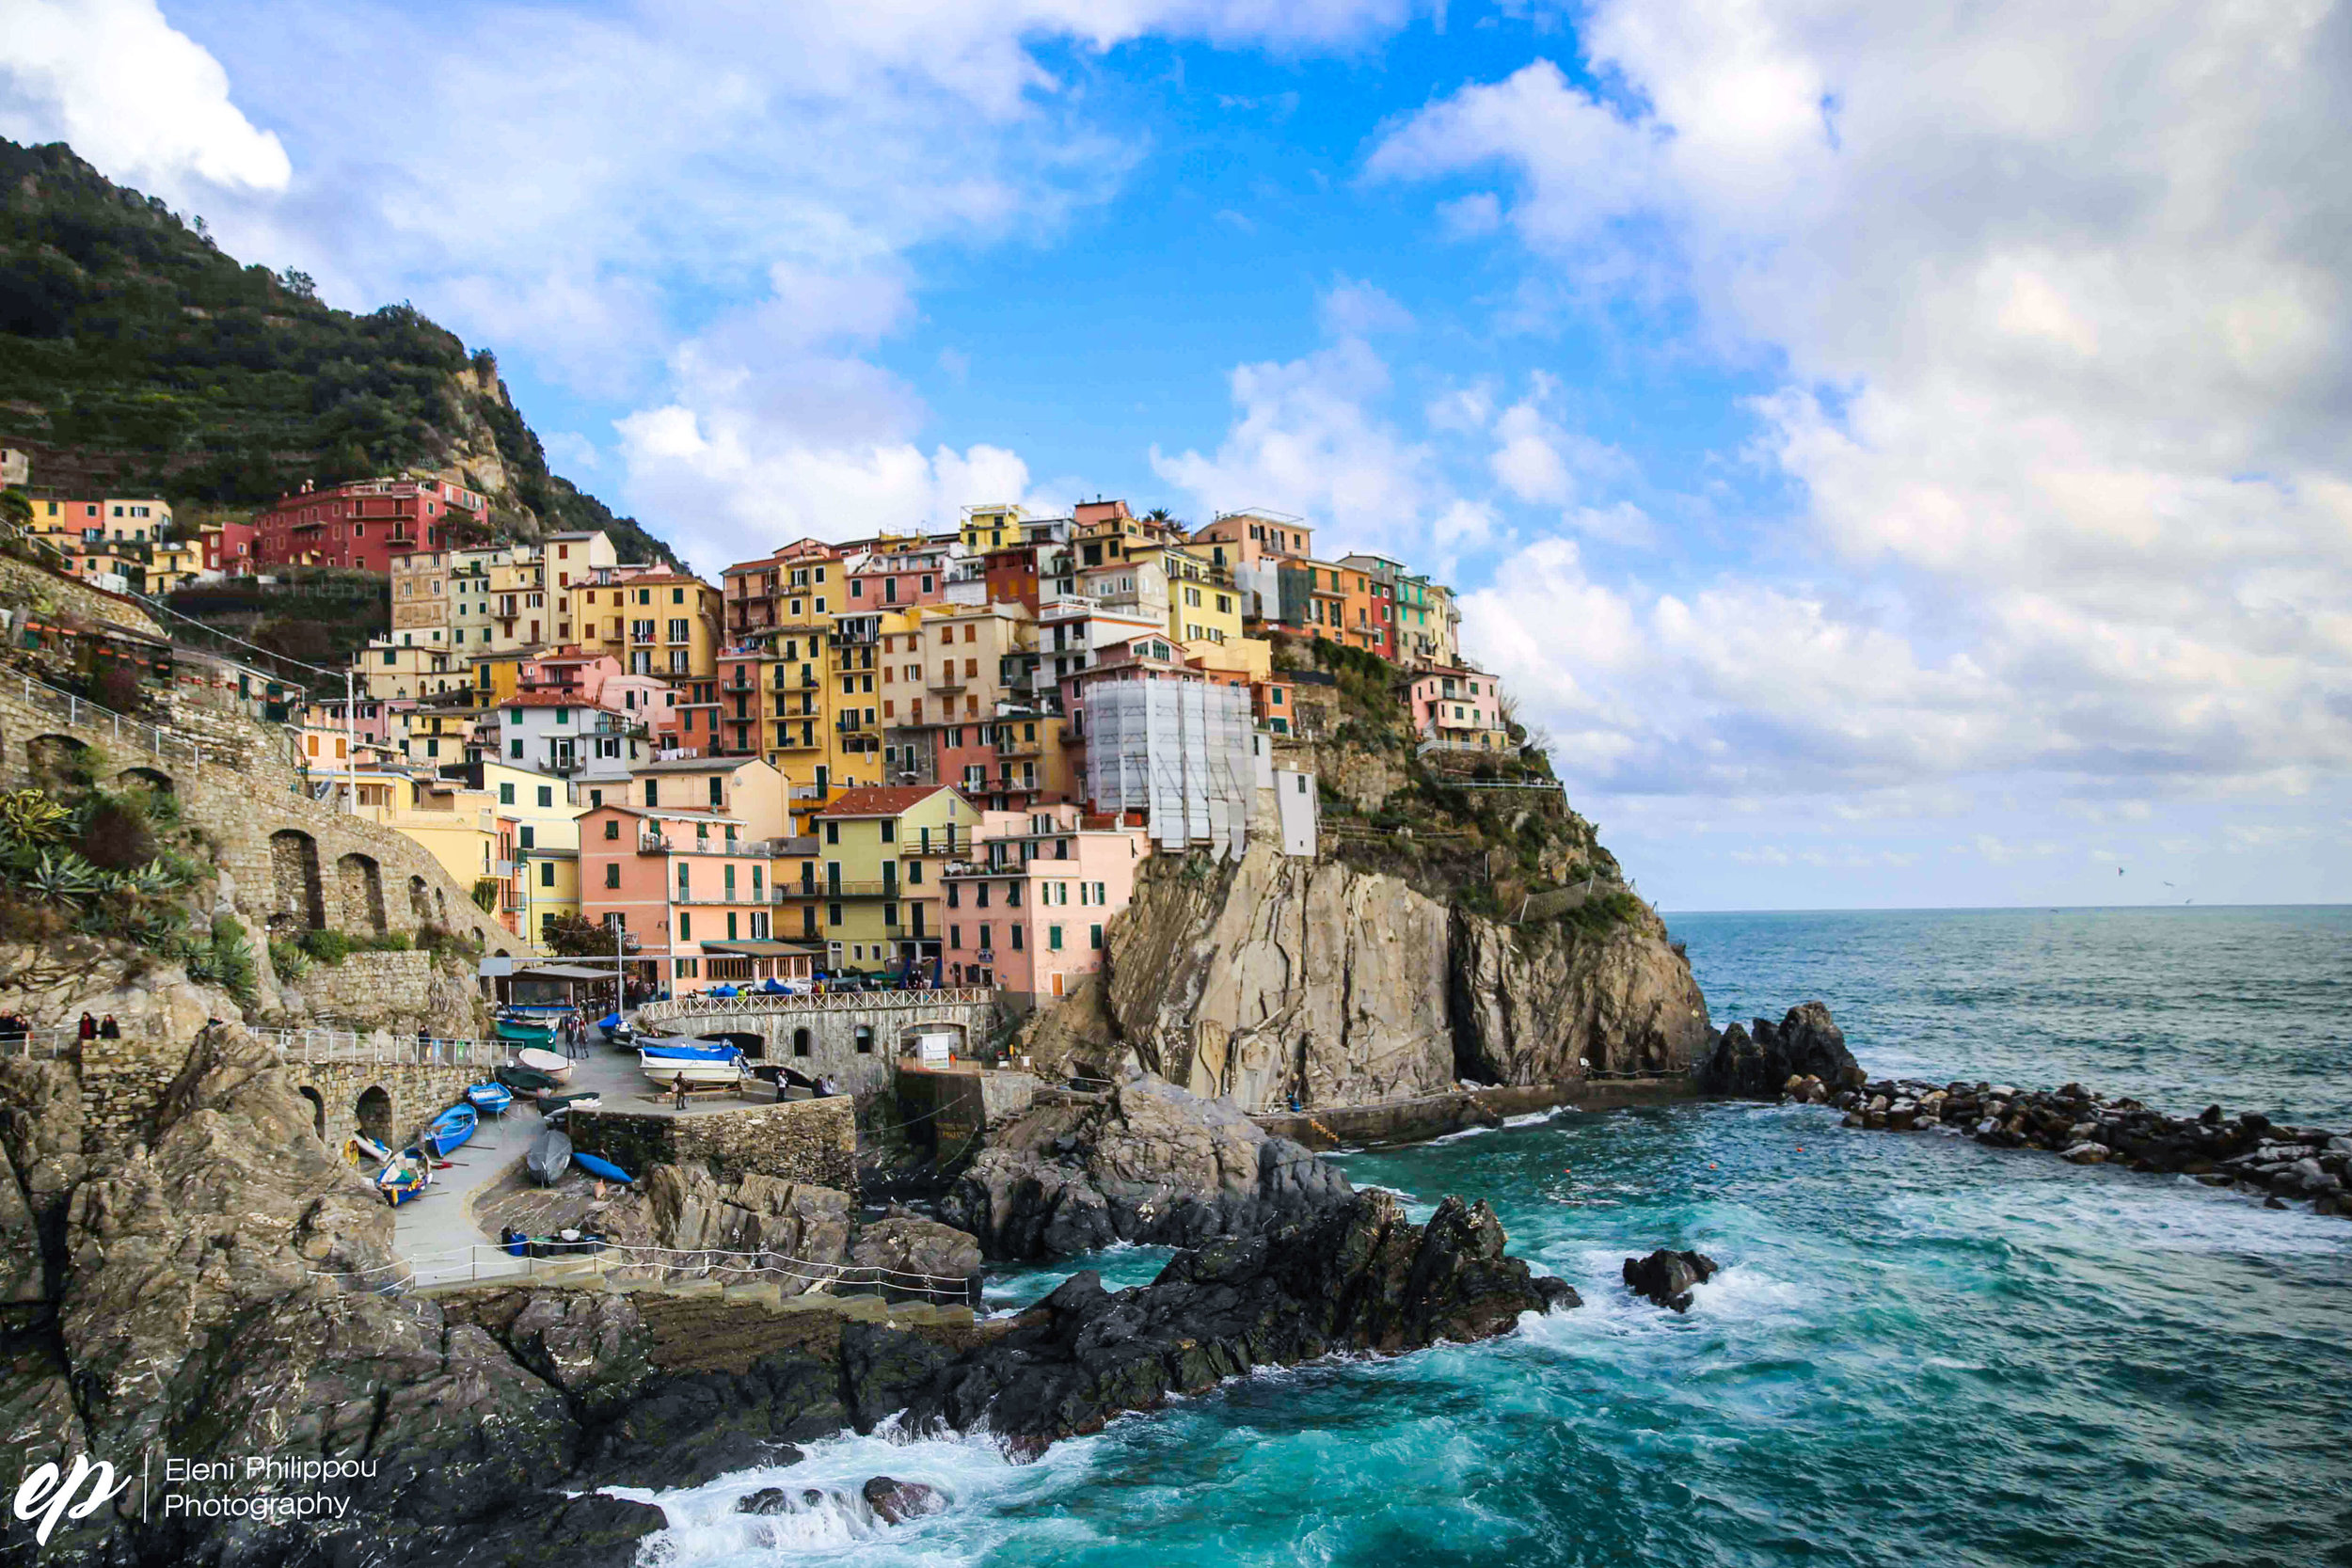 The most photographed spot of Manarola town and what you'll find when Googling it.